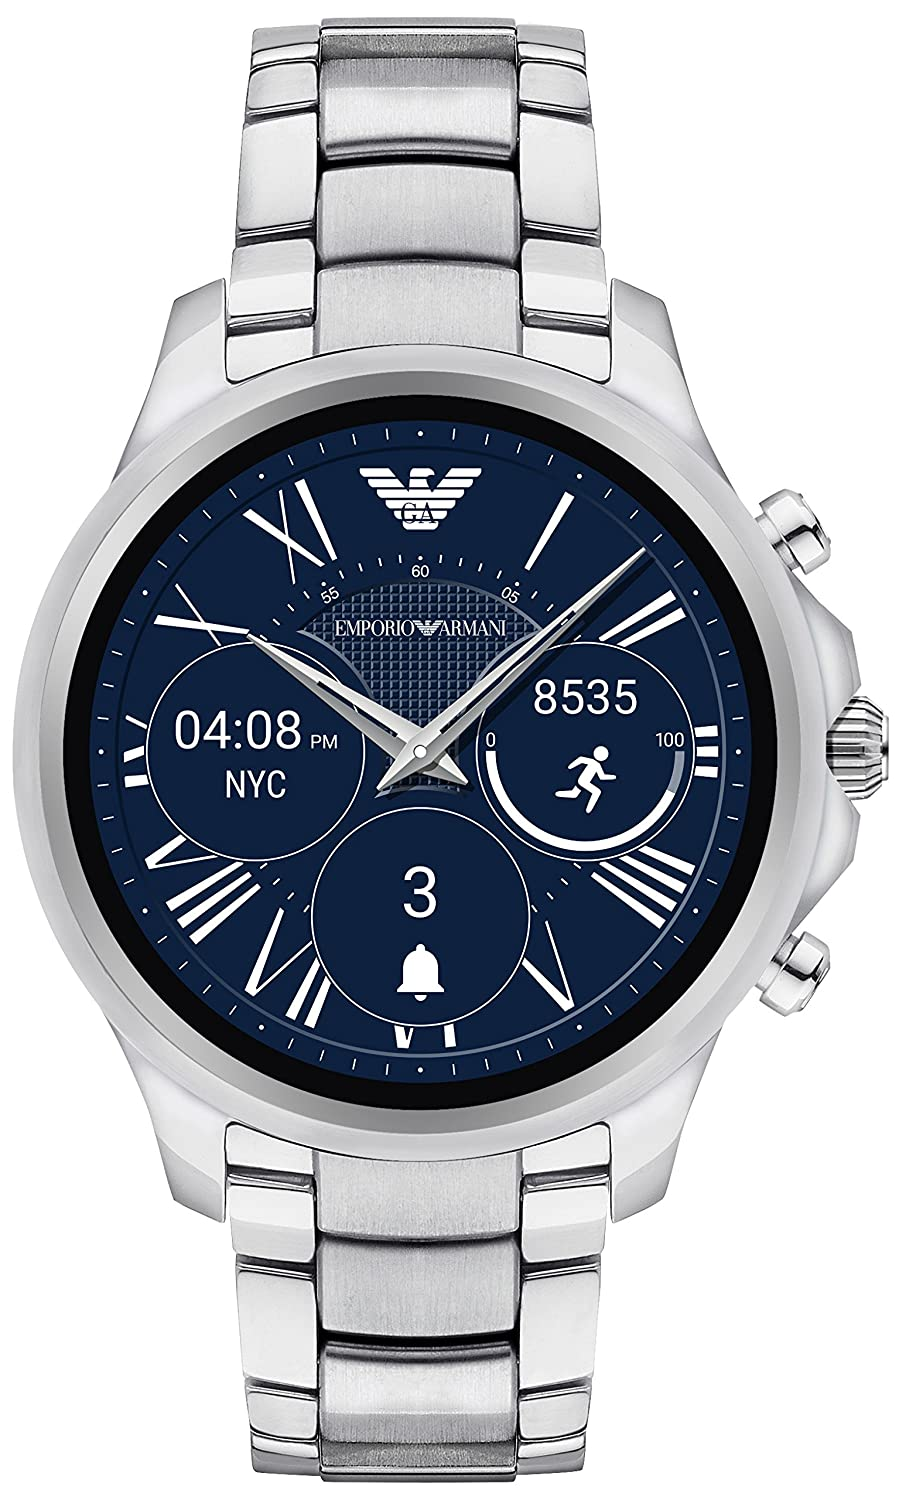 Emporio Armani Best Watches Brands For Men in India